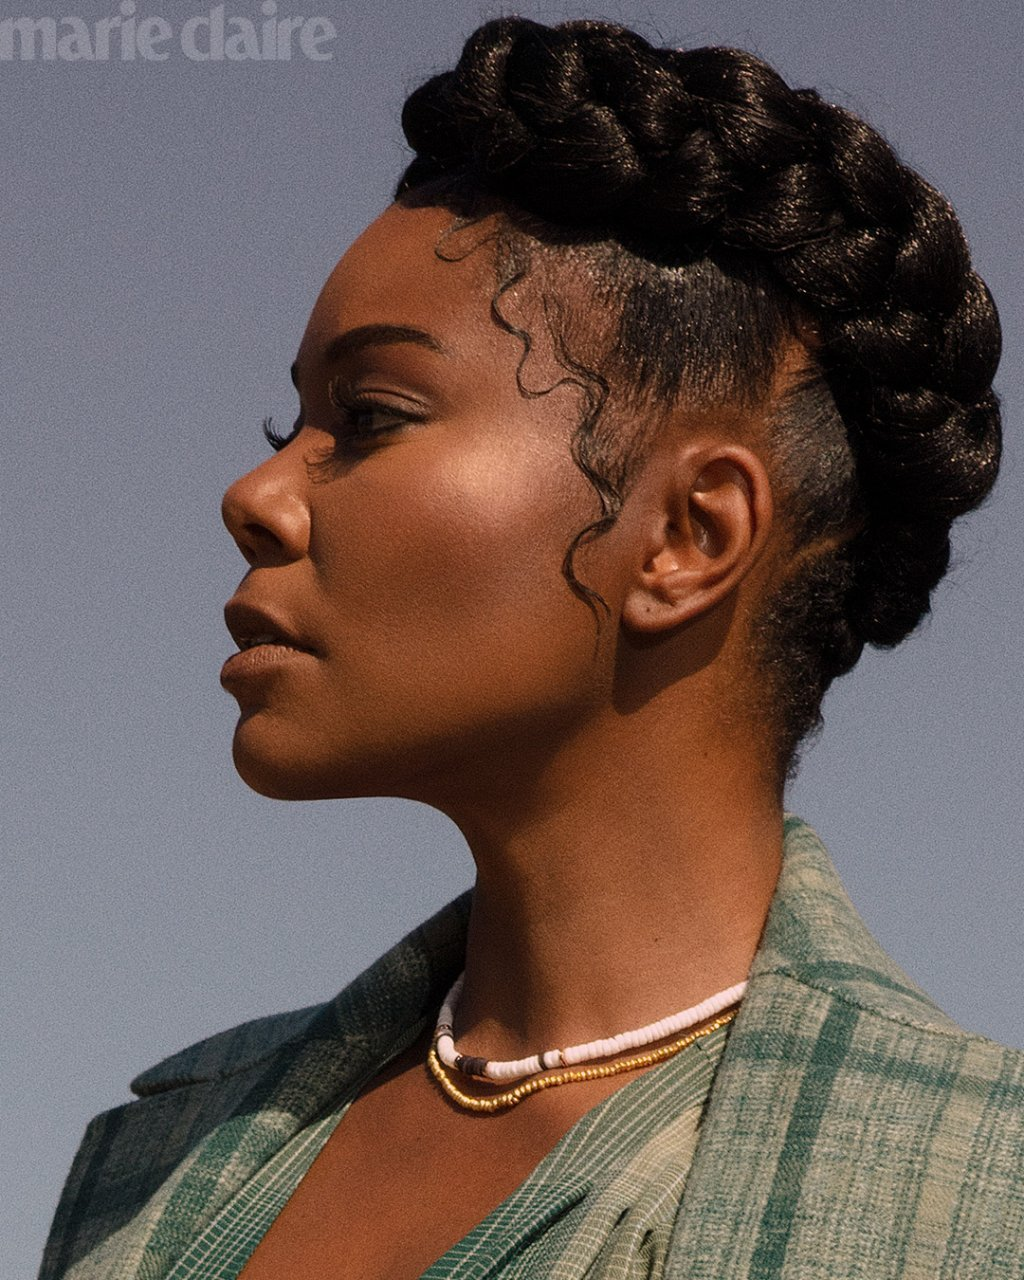 Gabrielle Union Is Comfortable In Her Own Skin – See More Pics From The Marie Claire Photo Shoot